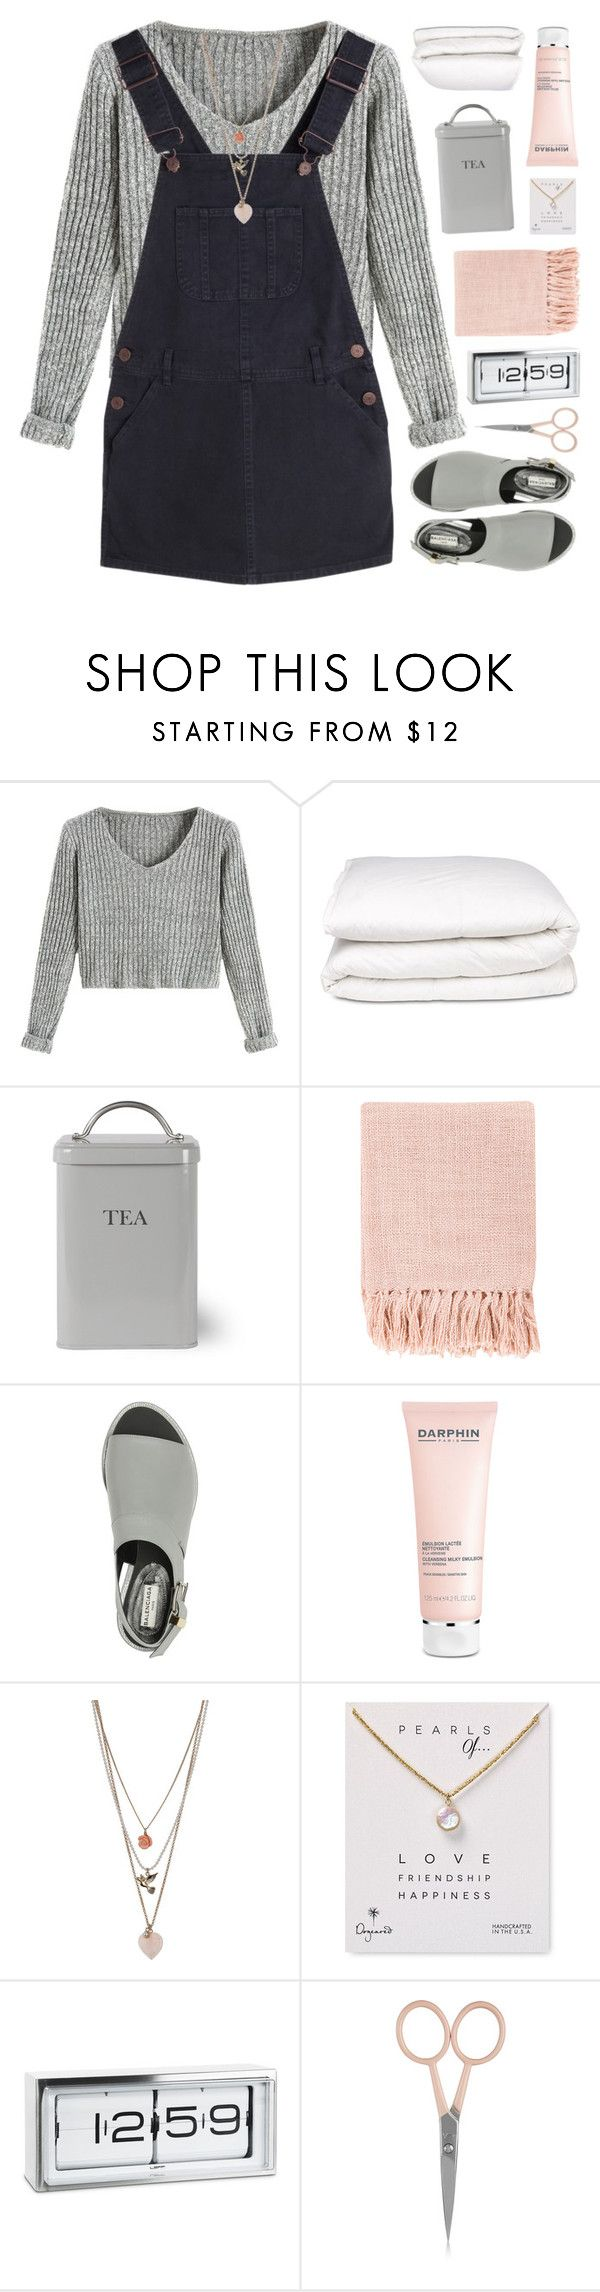 """""""PEARL OF LOVE"""" by emmas-fashion-diary ❤ liked on Polyvore featuring Selfridges, Garden Trading, Surya, Balenciaga, Darphin, Miss Selfridge, Dogeared, LEFF Amsterdam and Anastasia Beverly Hills"""